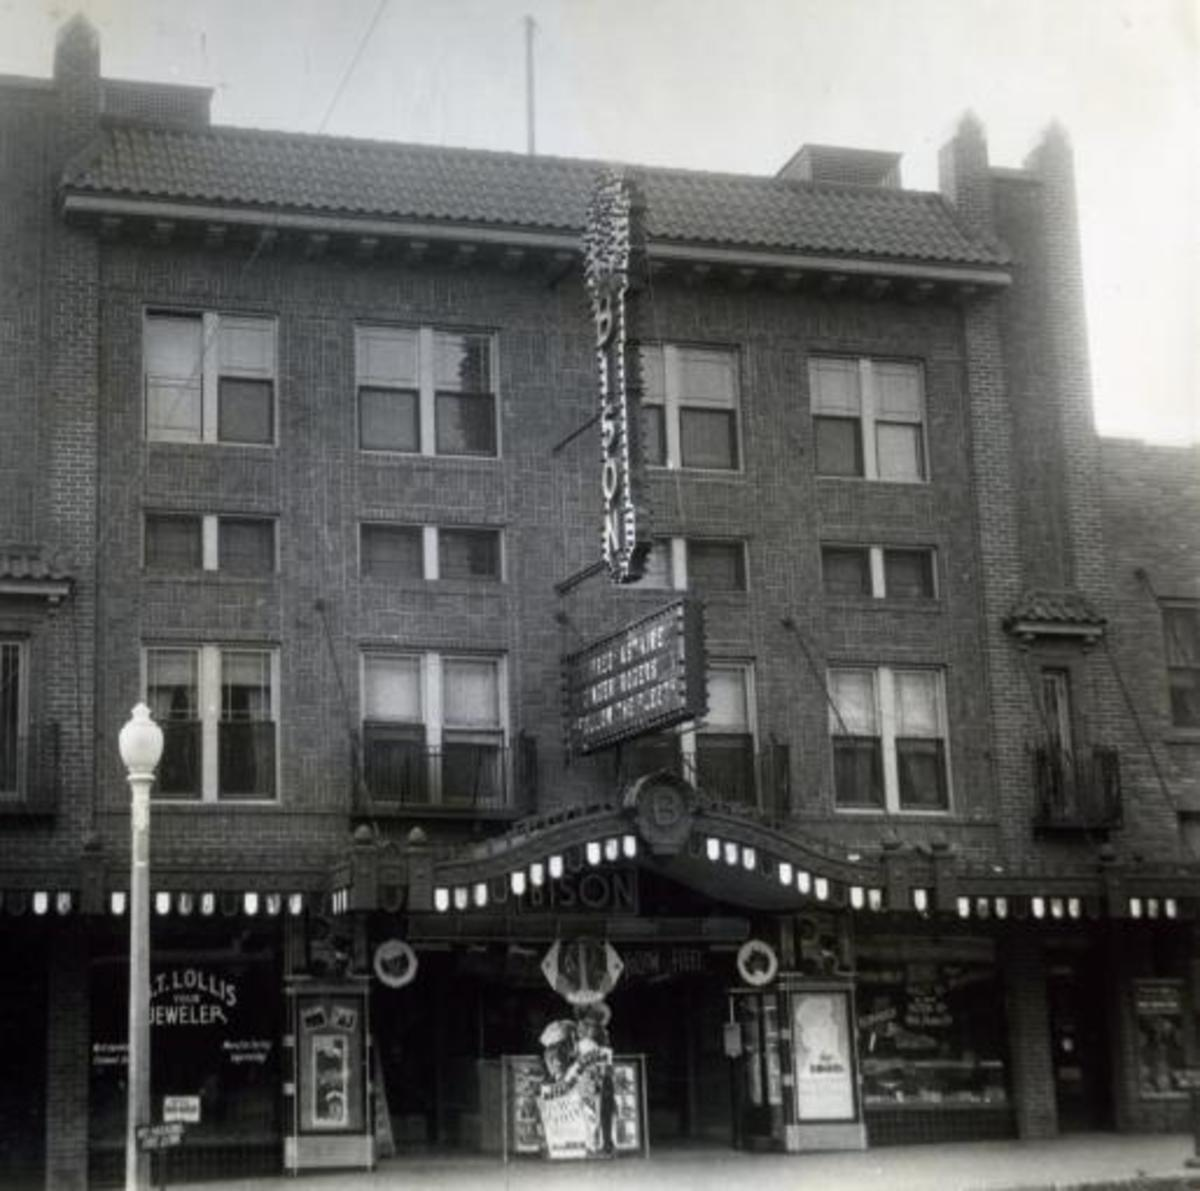 Bison Theater, 1936